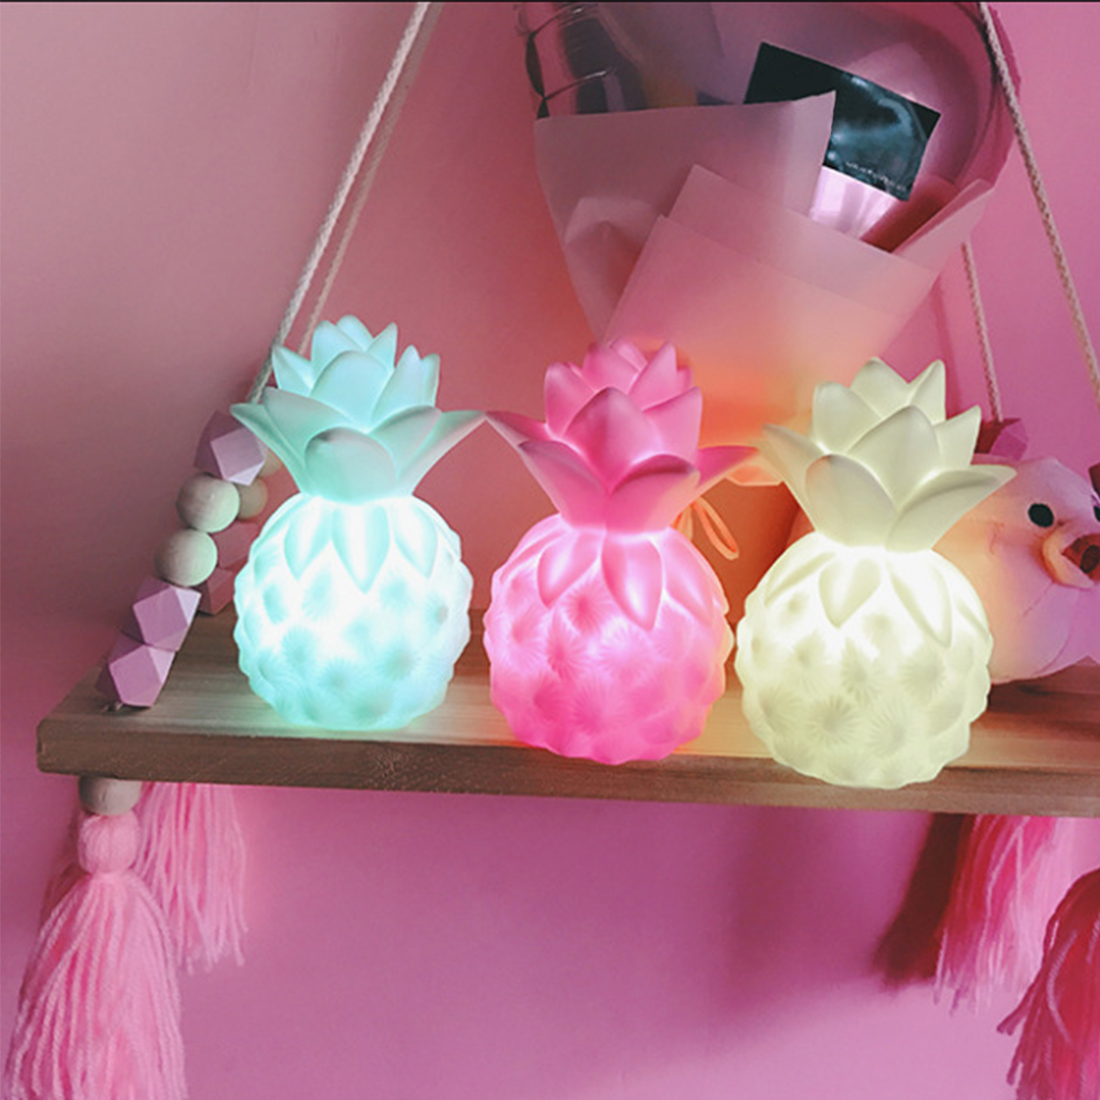 New 1pc Cartoon LED Night Light Pineapple Table Lamp Creative Gift For Friend Children Baby Light Yellow / Pink / Green